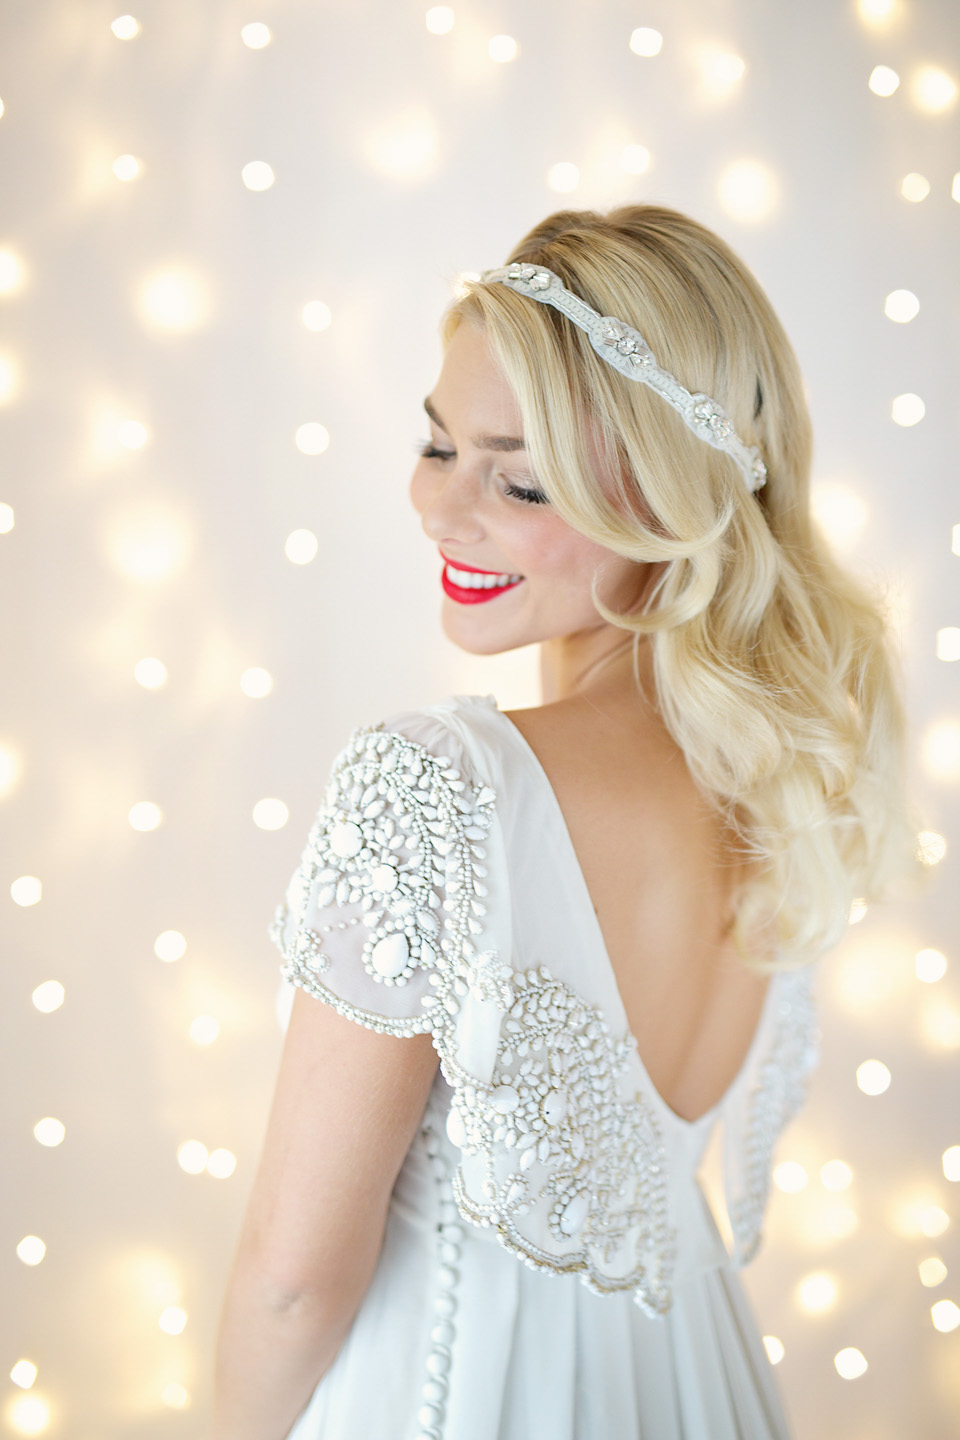 Victoria Fergusson's 'The Goddess Collection' – Exceptional Handmade Bridal Accessories